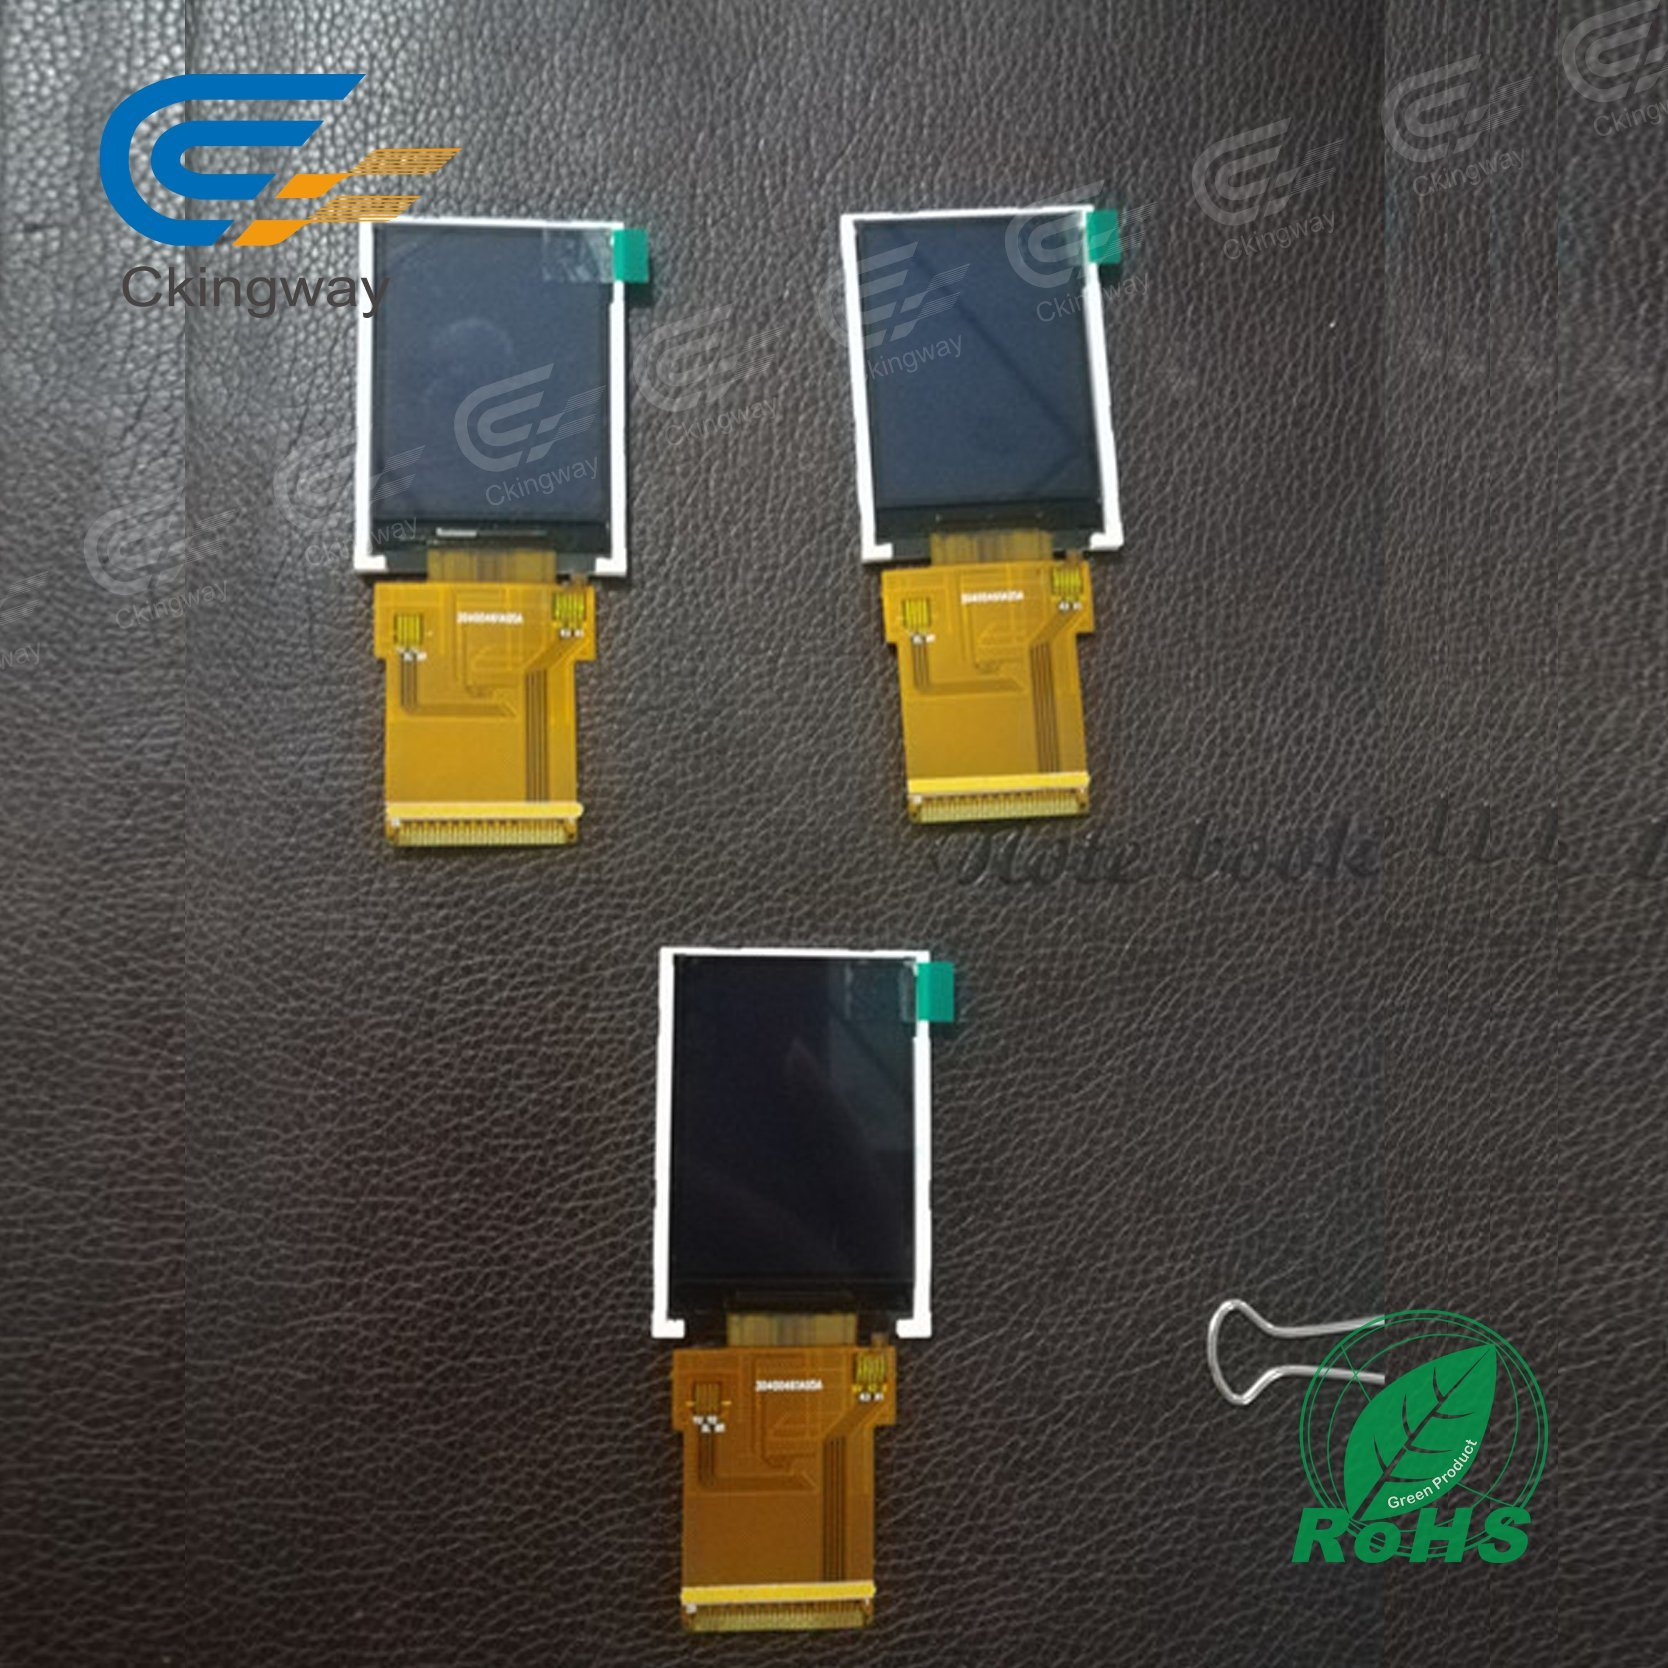 Ckingway 2.0 High Resolutions Colorful Display Transparent TFT LCD Display for industrial Control